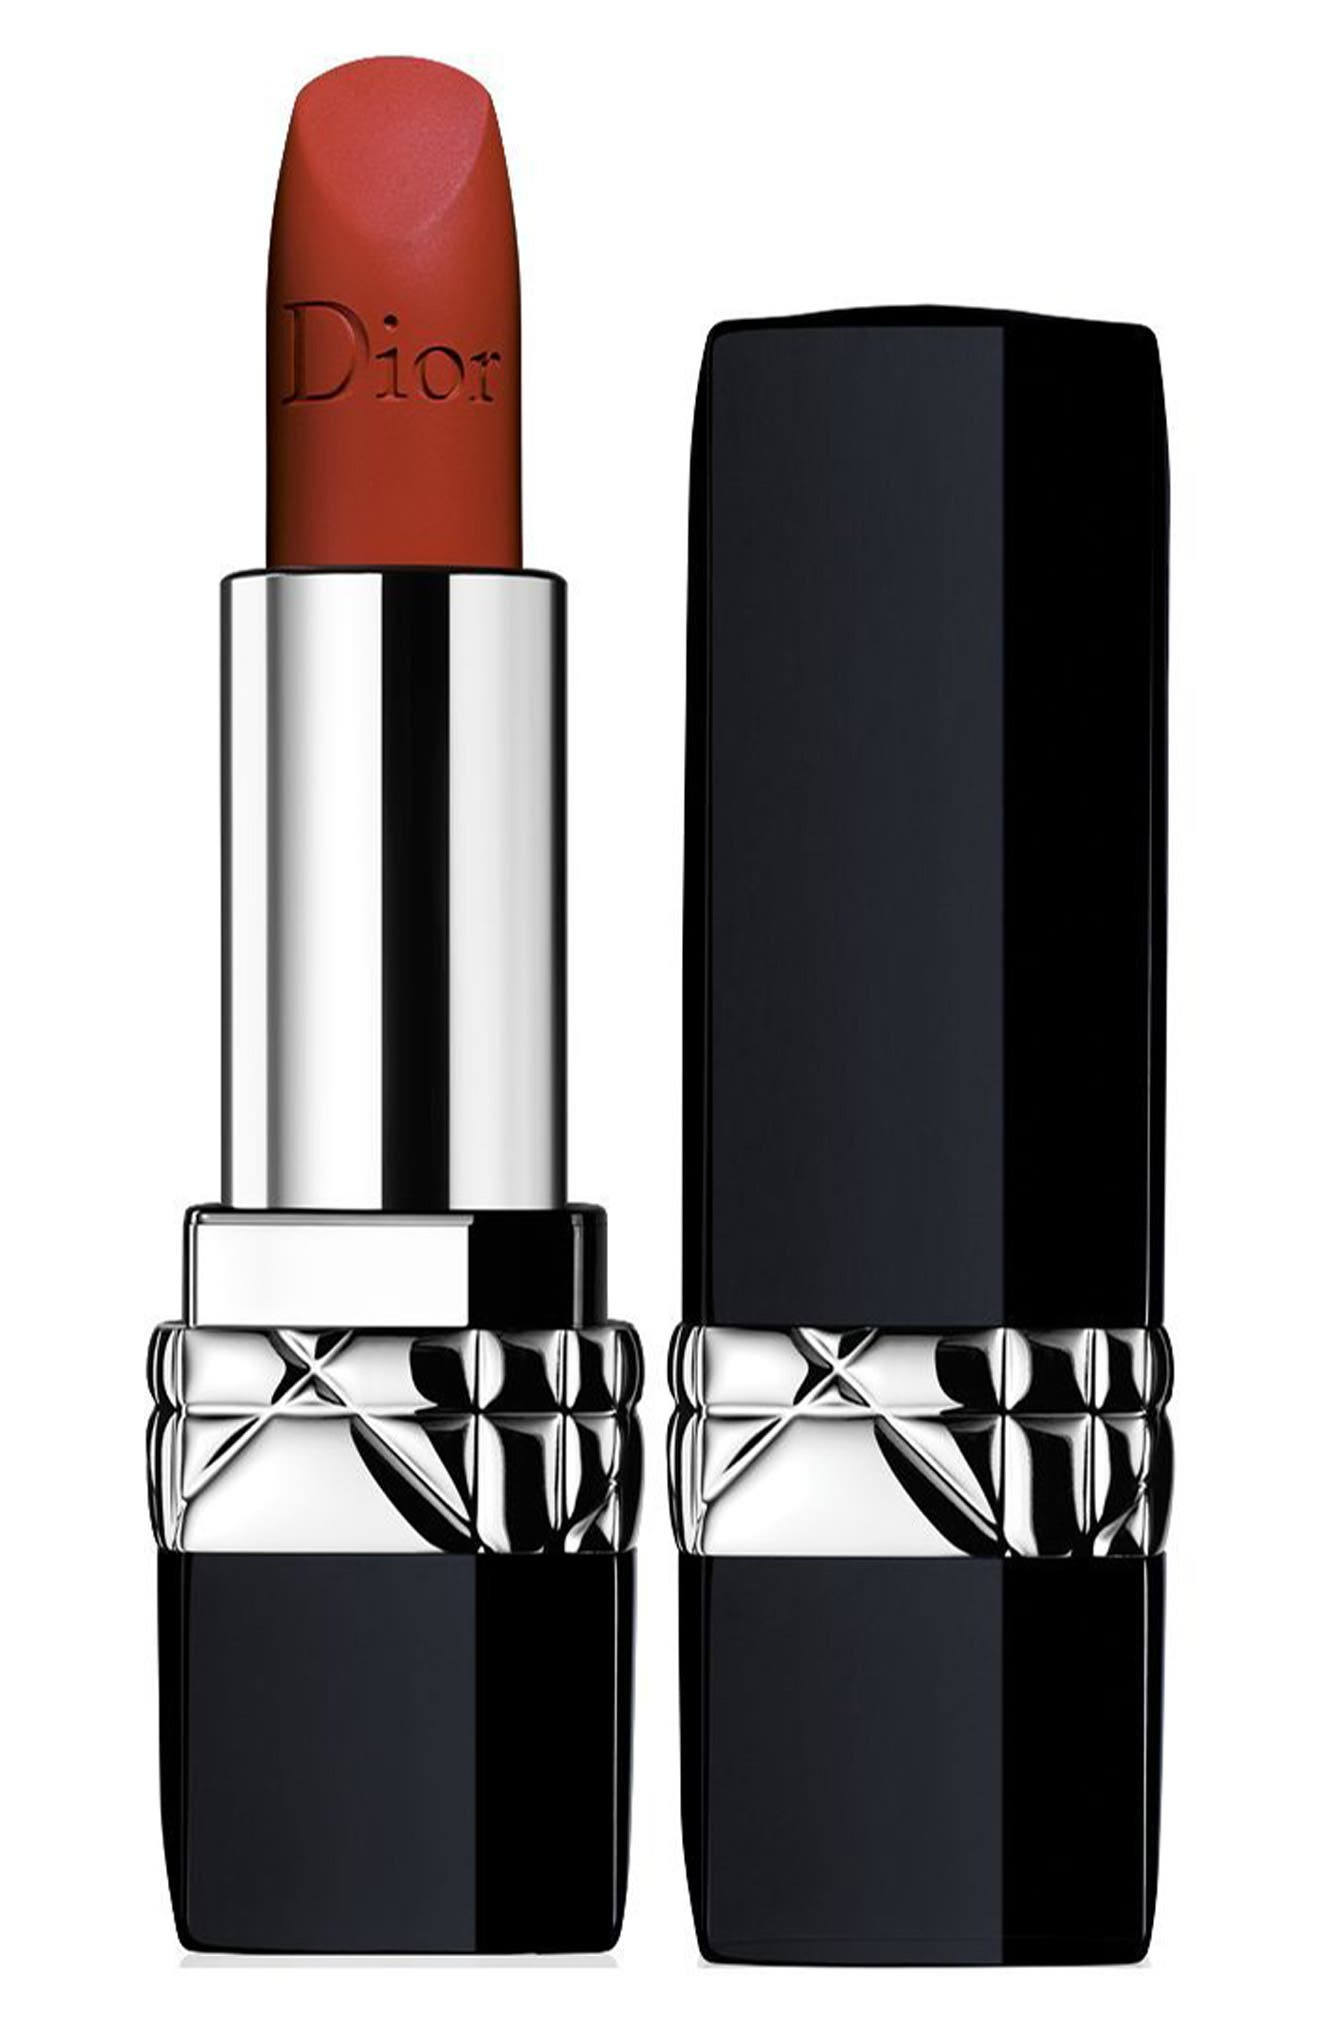 Dior Couture Color Rouge Dior Lipstick - 951 Absolute Matte